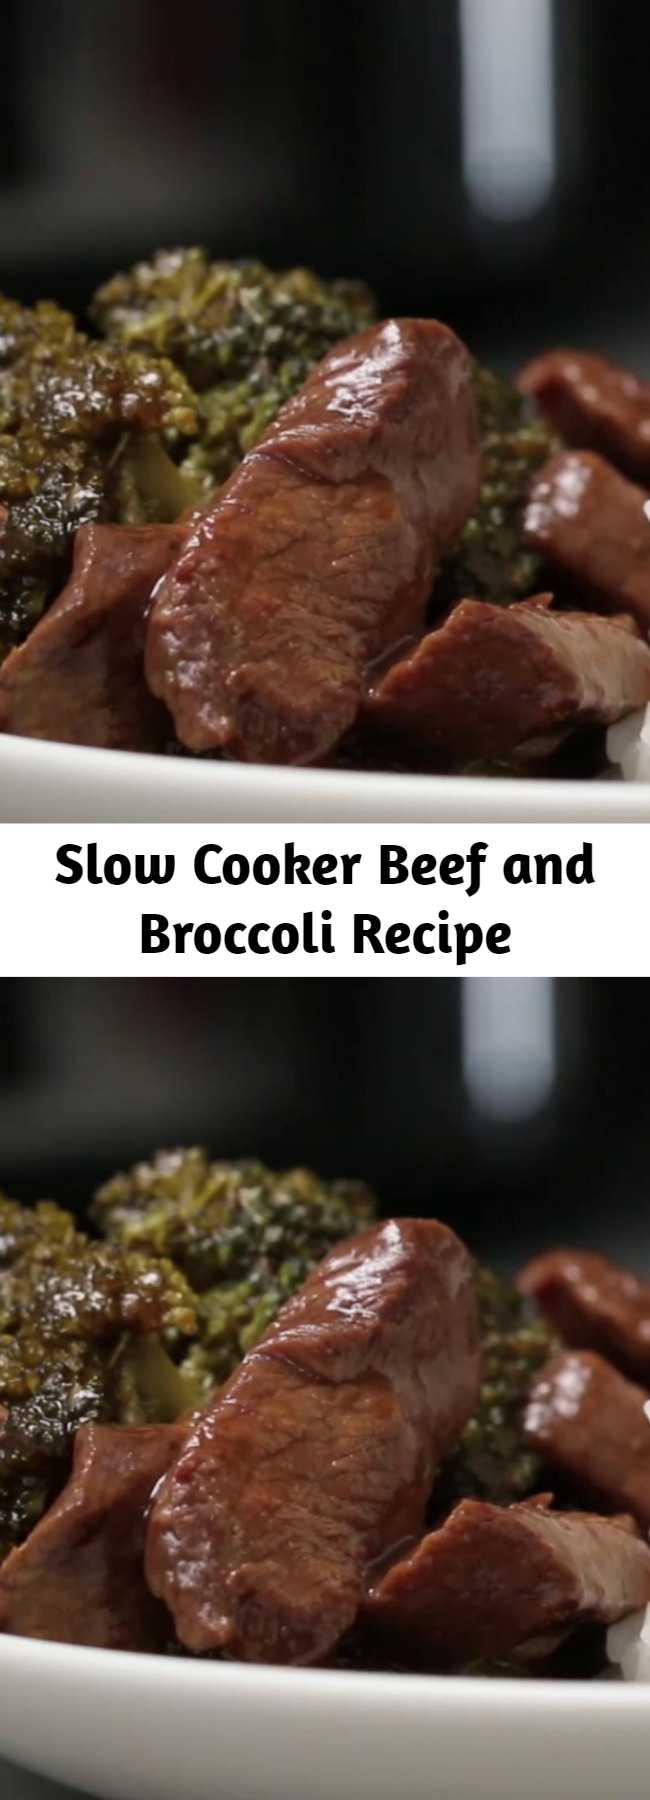 Slow Cooker Beef and Broccoli Recipe - This Beef and Broccoli takes just minutes to throw in the slow cooker. The beef melts in your mouth and the flavor is out of this world!